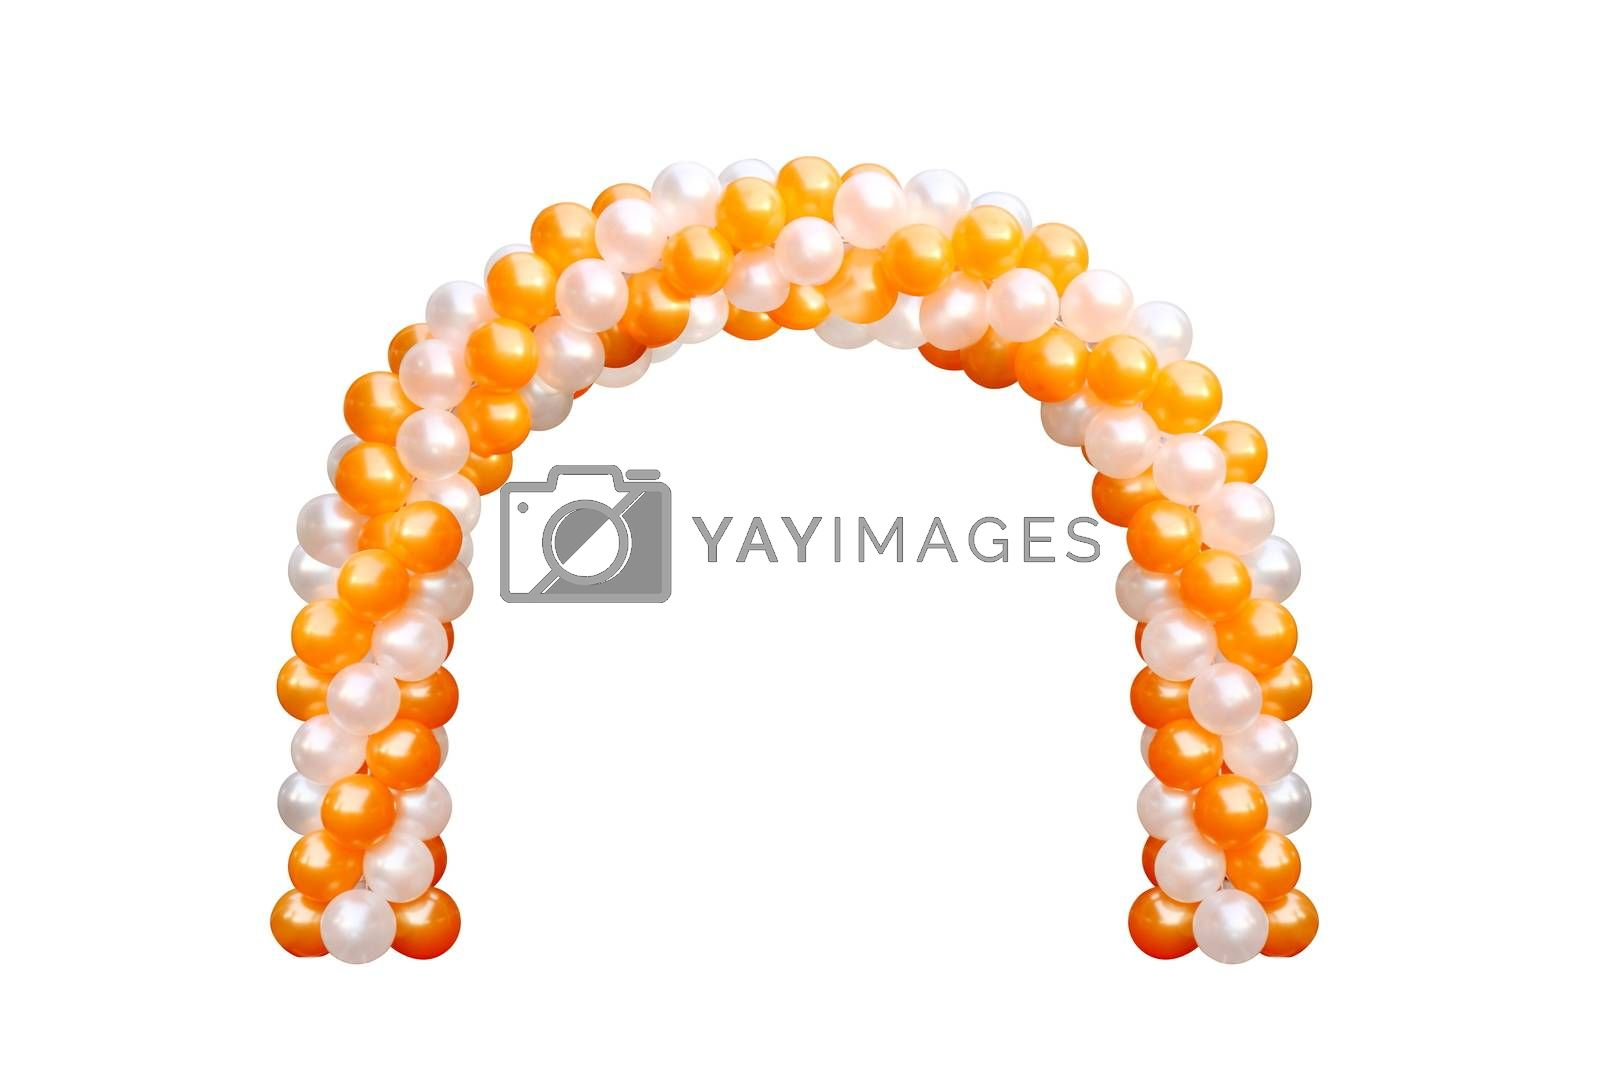 Balloon Archway door Orange and white, Arches wedding, Balloon Festival design decoration elements with arch floral design isolated on white Background